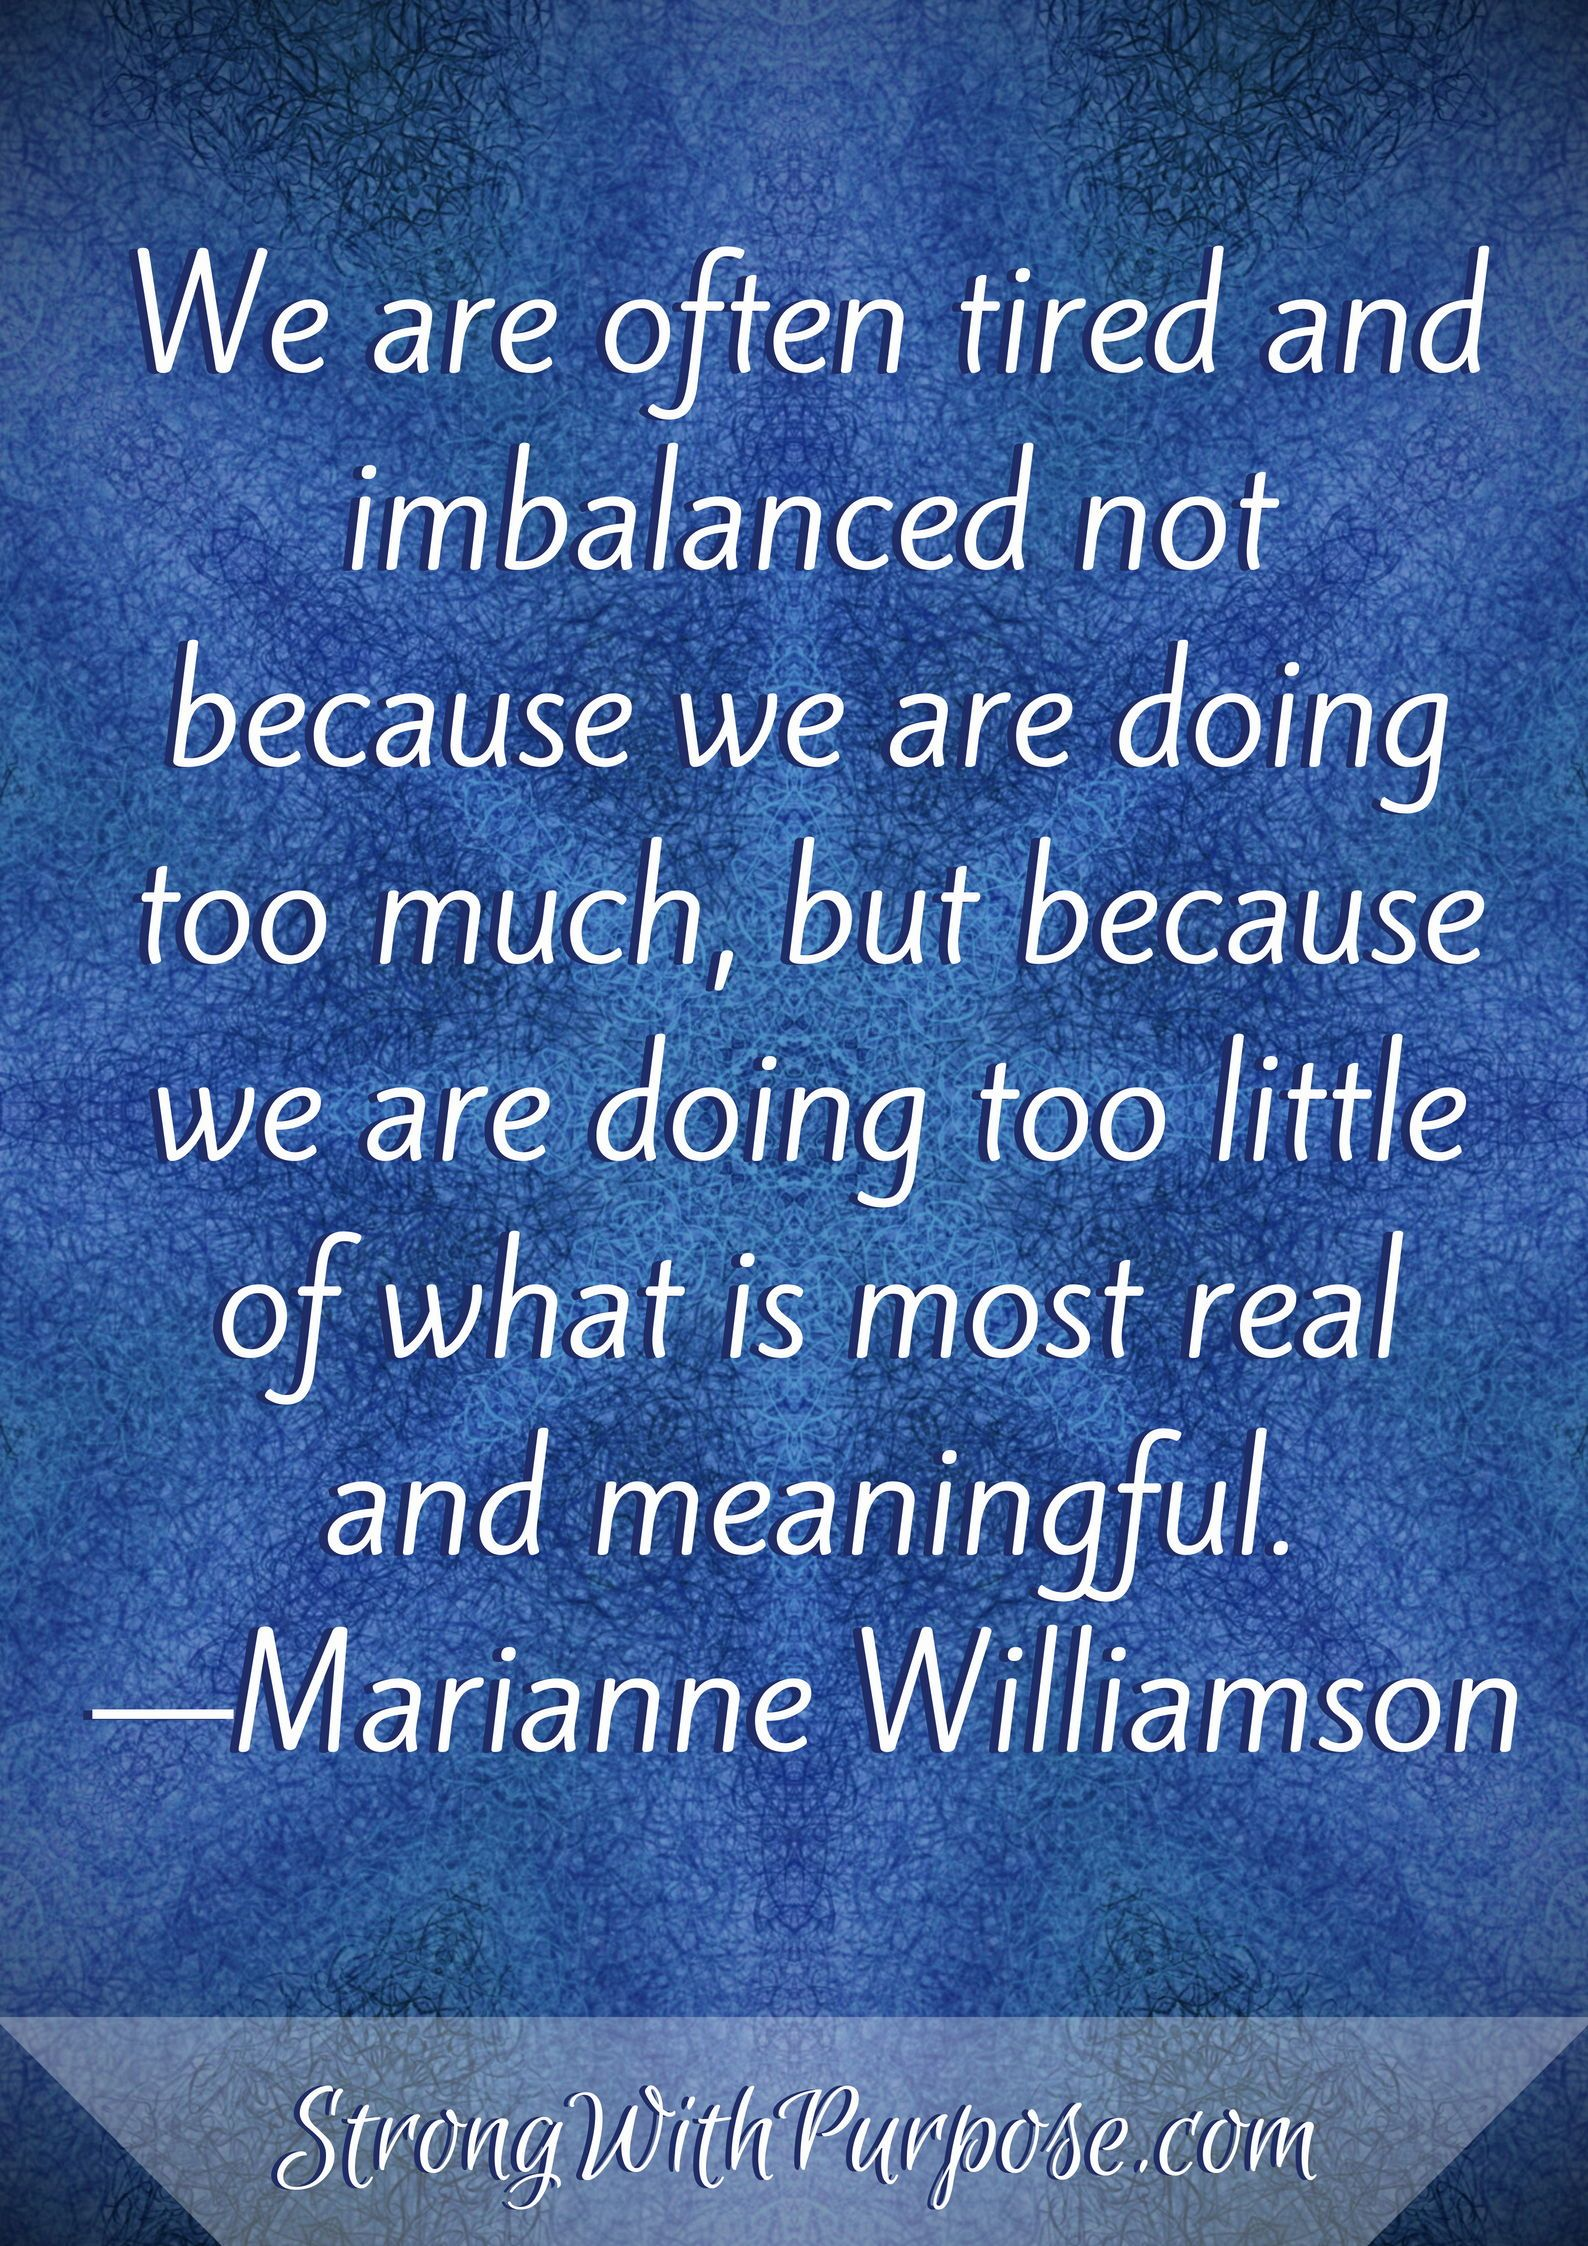 Printable Mindset Quotes Strong With Purpose Healing Intuitive Living Empathy Quotes Mindset Quotes Marianne Williamson Quote